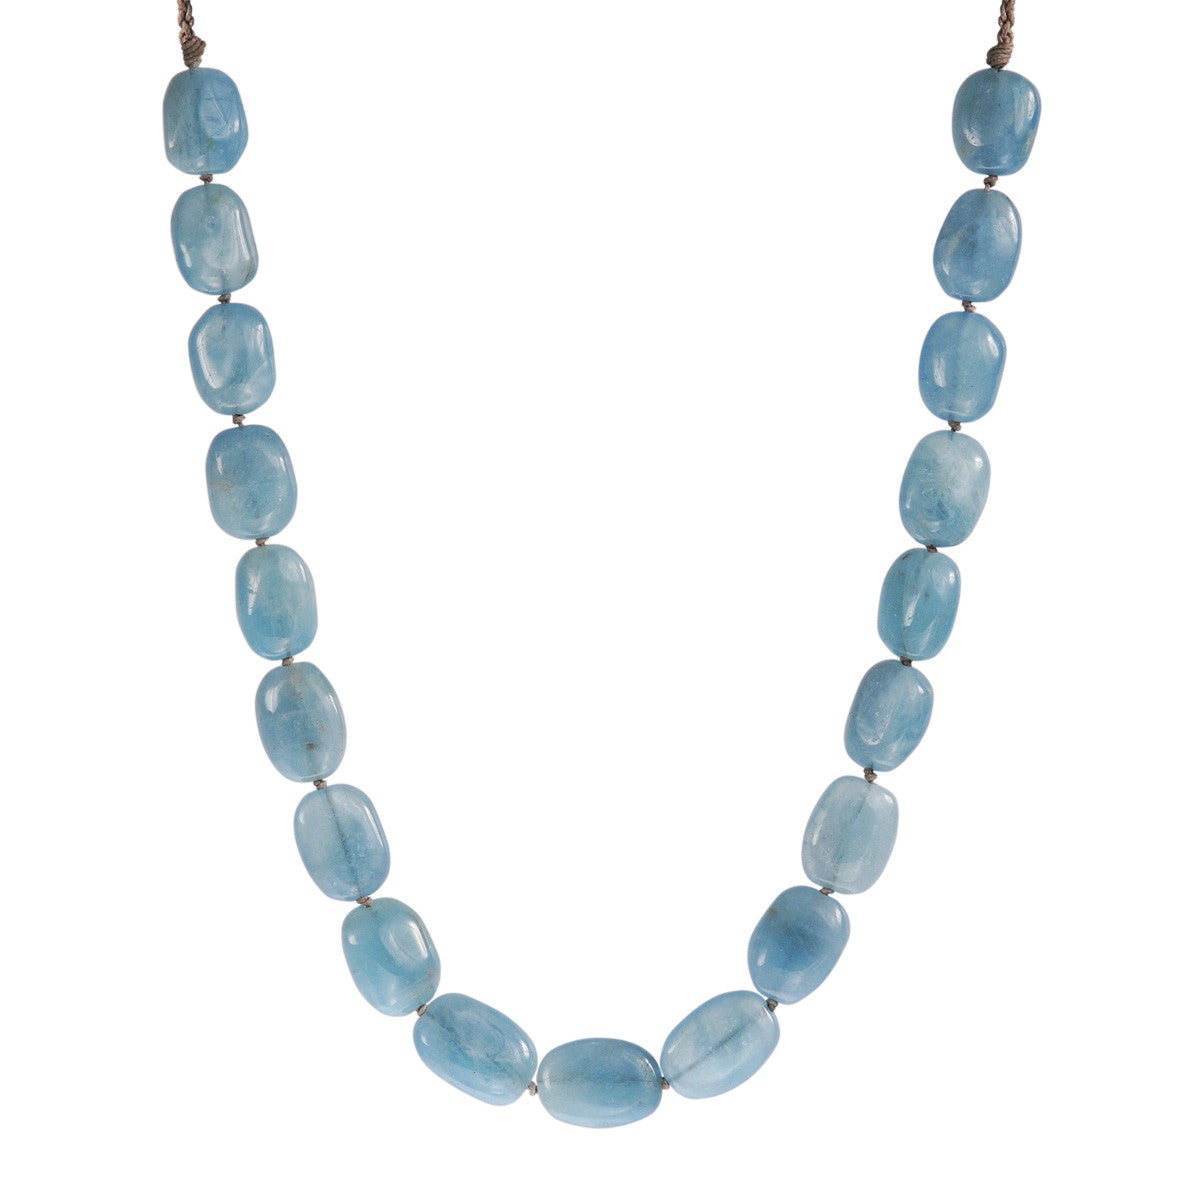 Sterling Silver Knotted Aquamarine Necklace on Cord